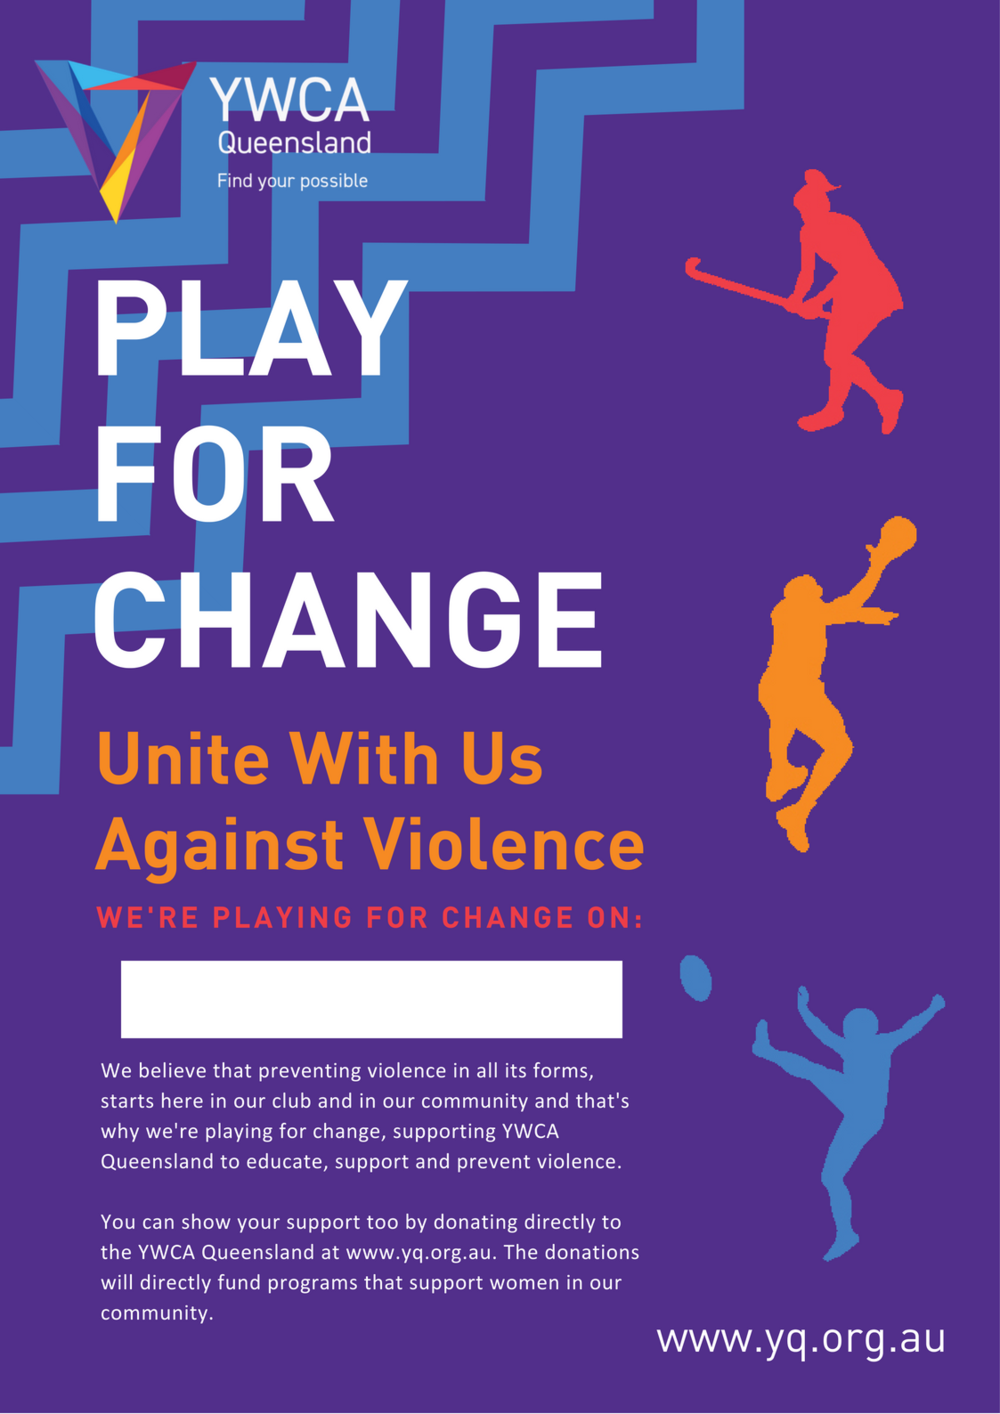 Play for Change - A3 Poster in Purple